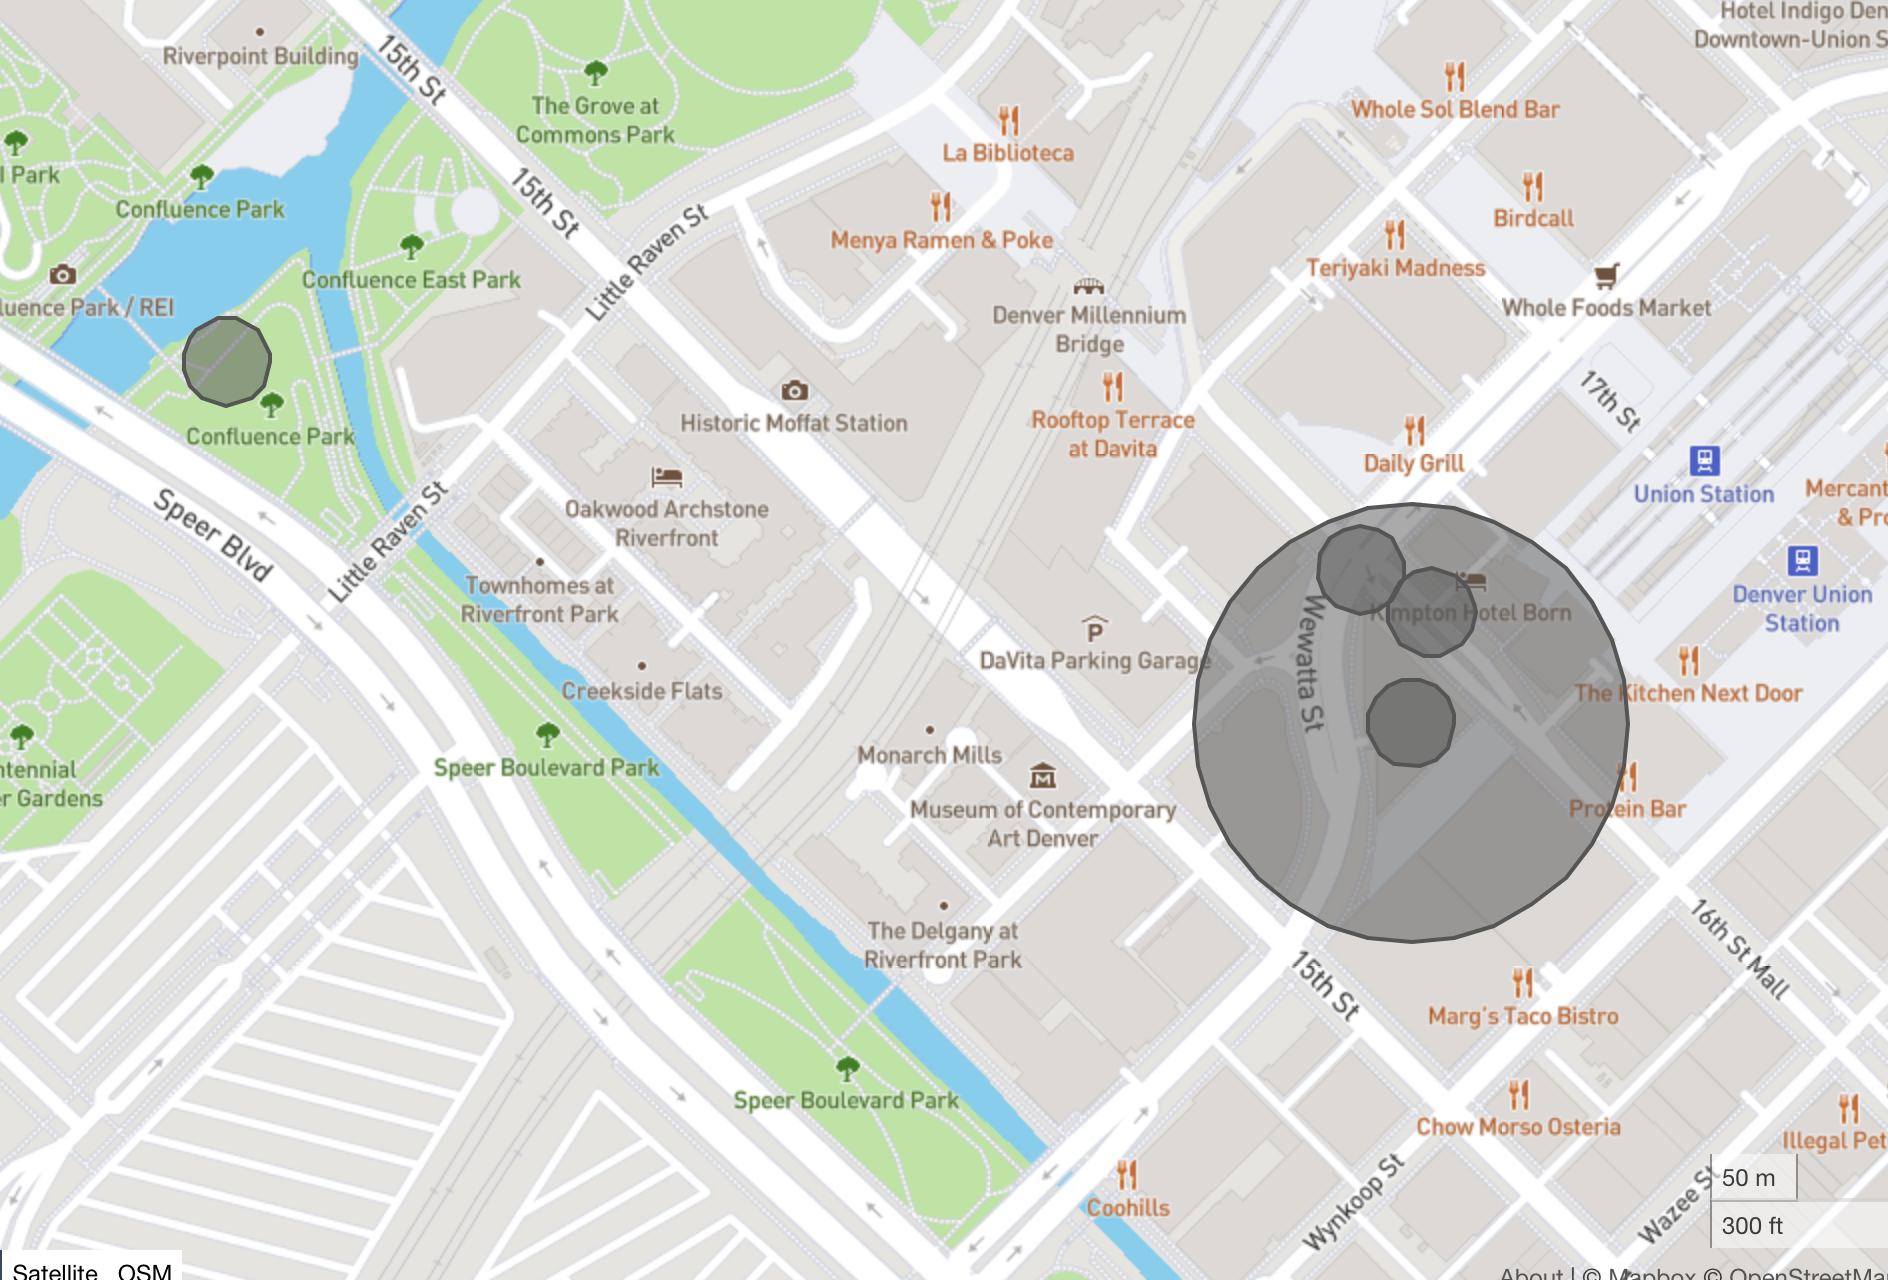 A location transition GeoJSON feature collection showing four device locations in relation to a circular geographic region, as displayed on http://geojson.io